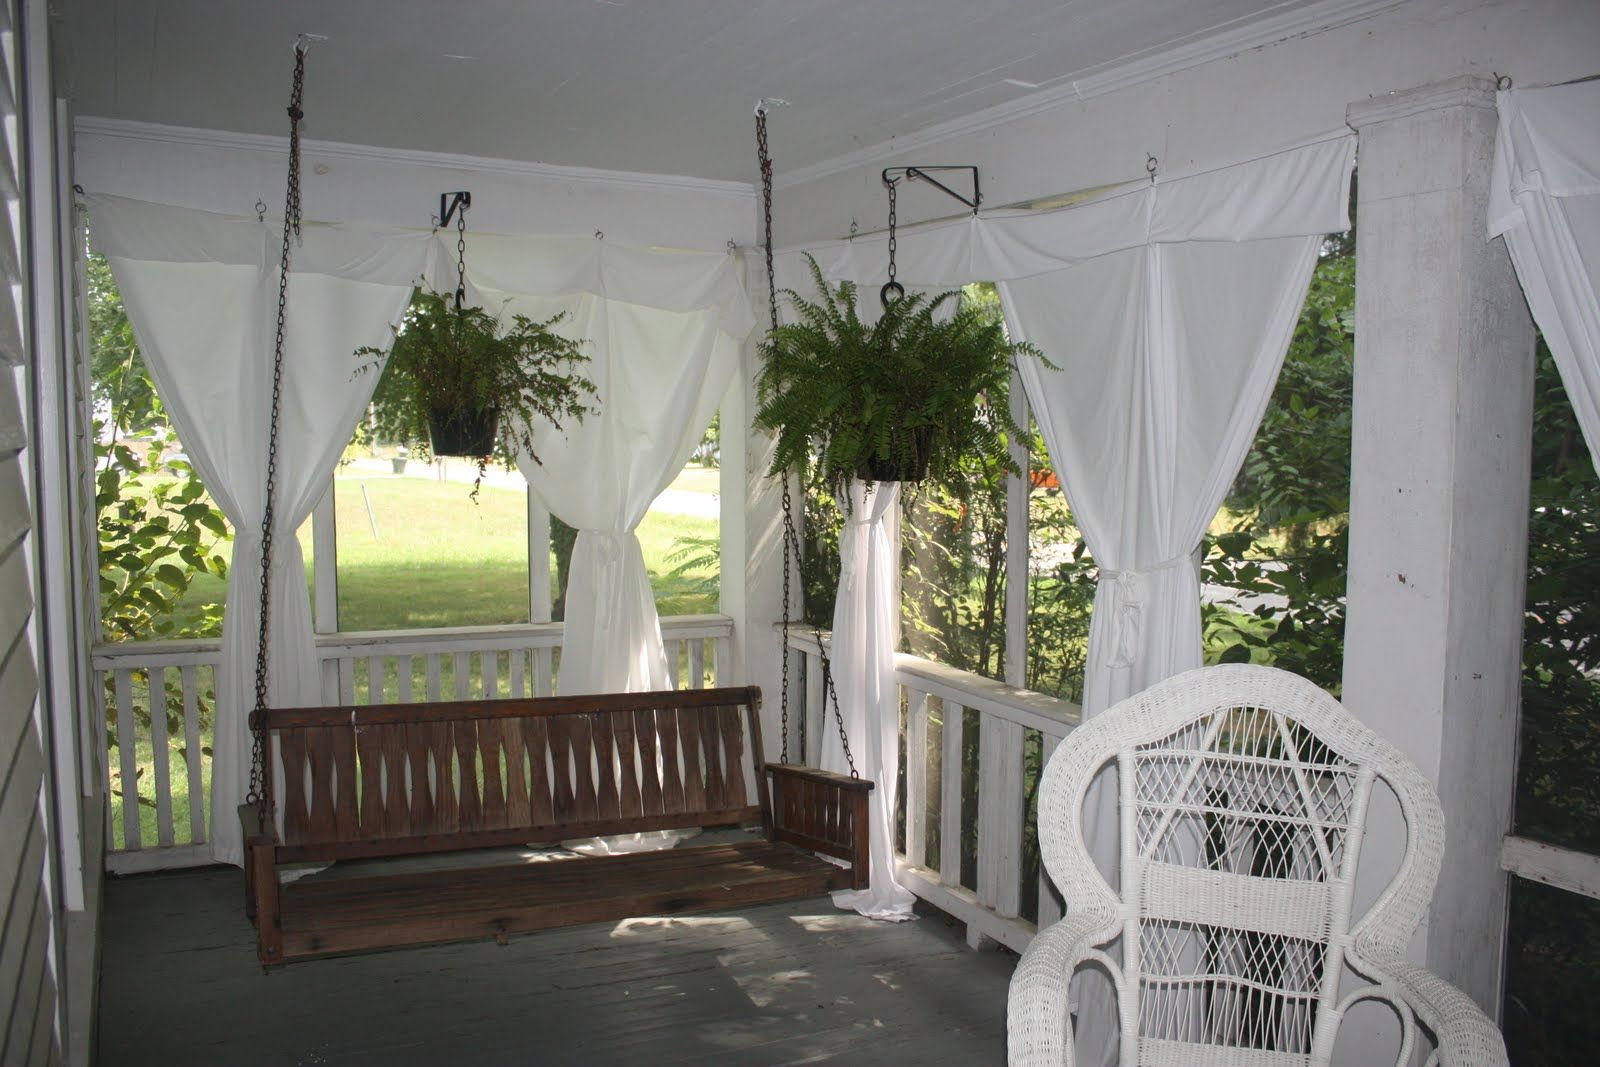 top zero p curtains sun panel w gregory x room semi drapes taupe patio grommet opaque in l darkening